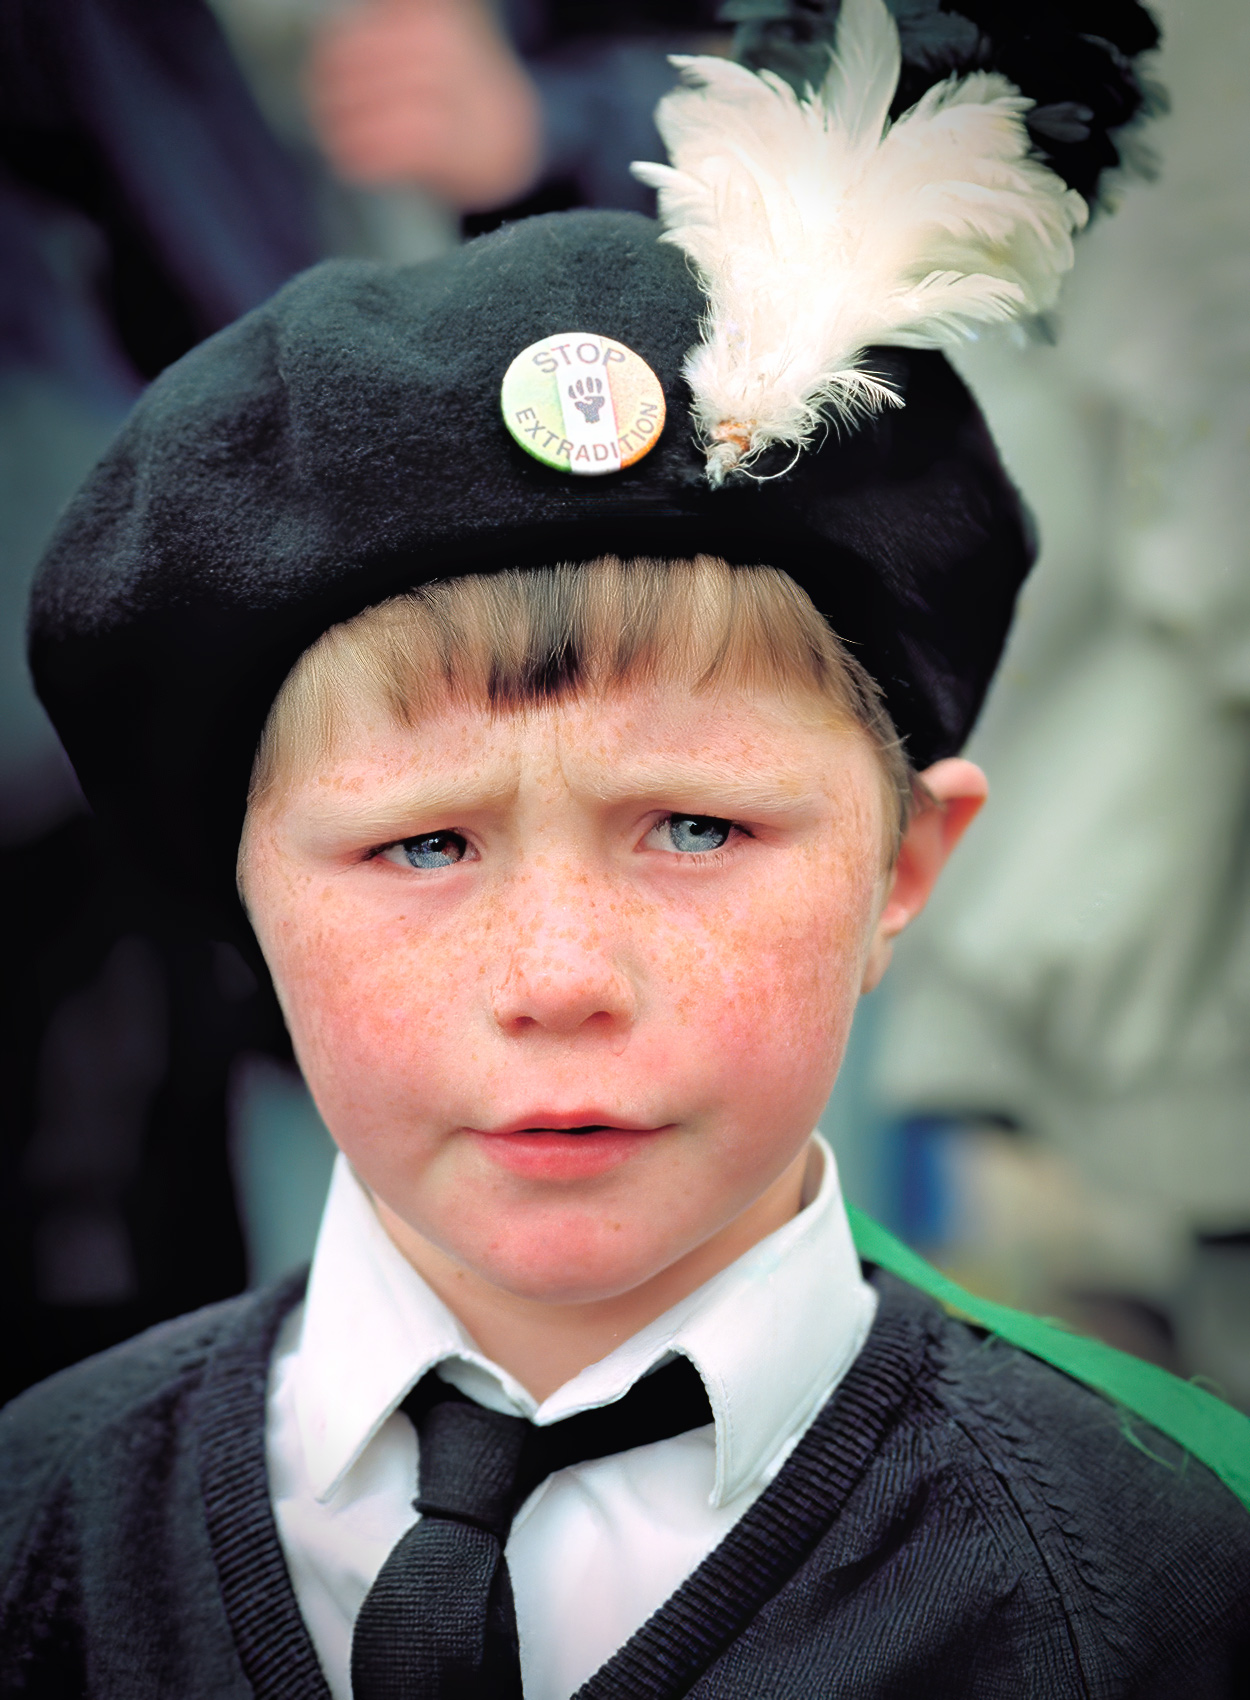 a-young-boy-wears-a-beret-with-a-white-feather-duringa-march-in-catholic-west-belfast-northern-ireland